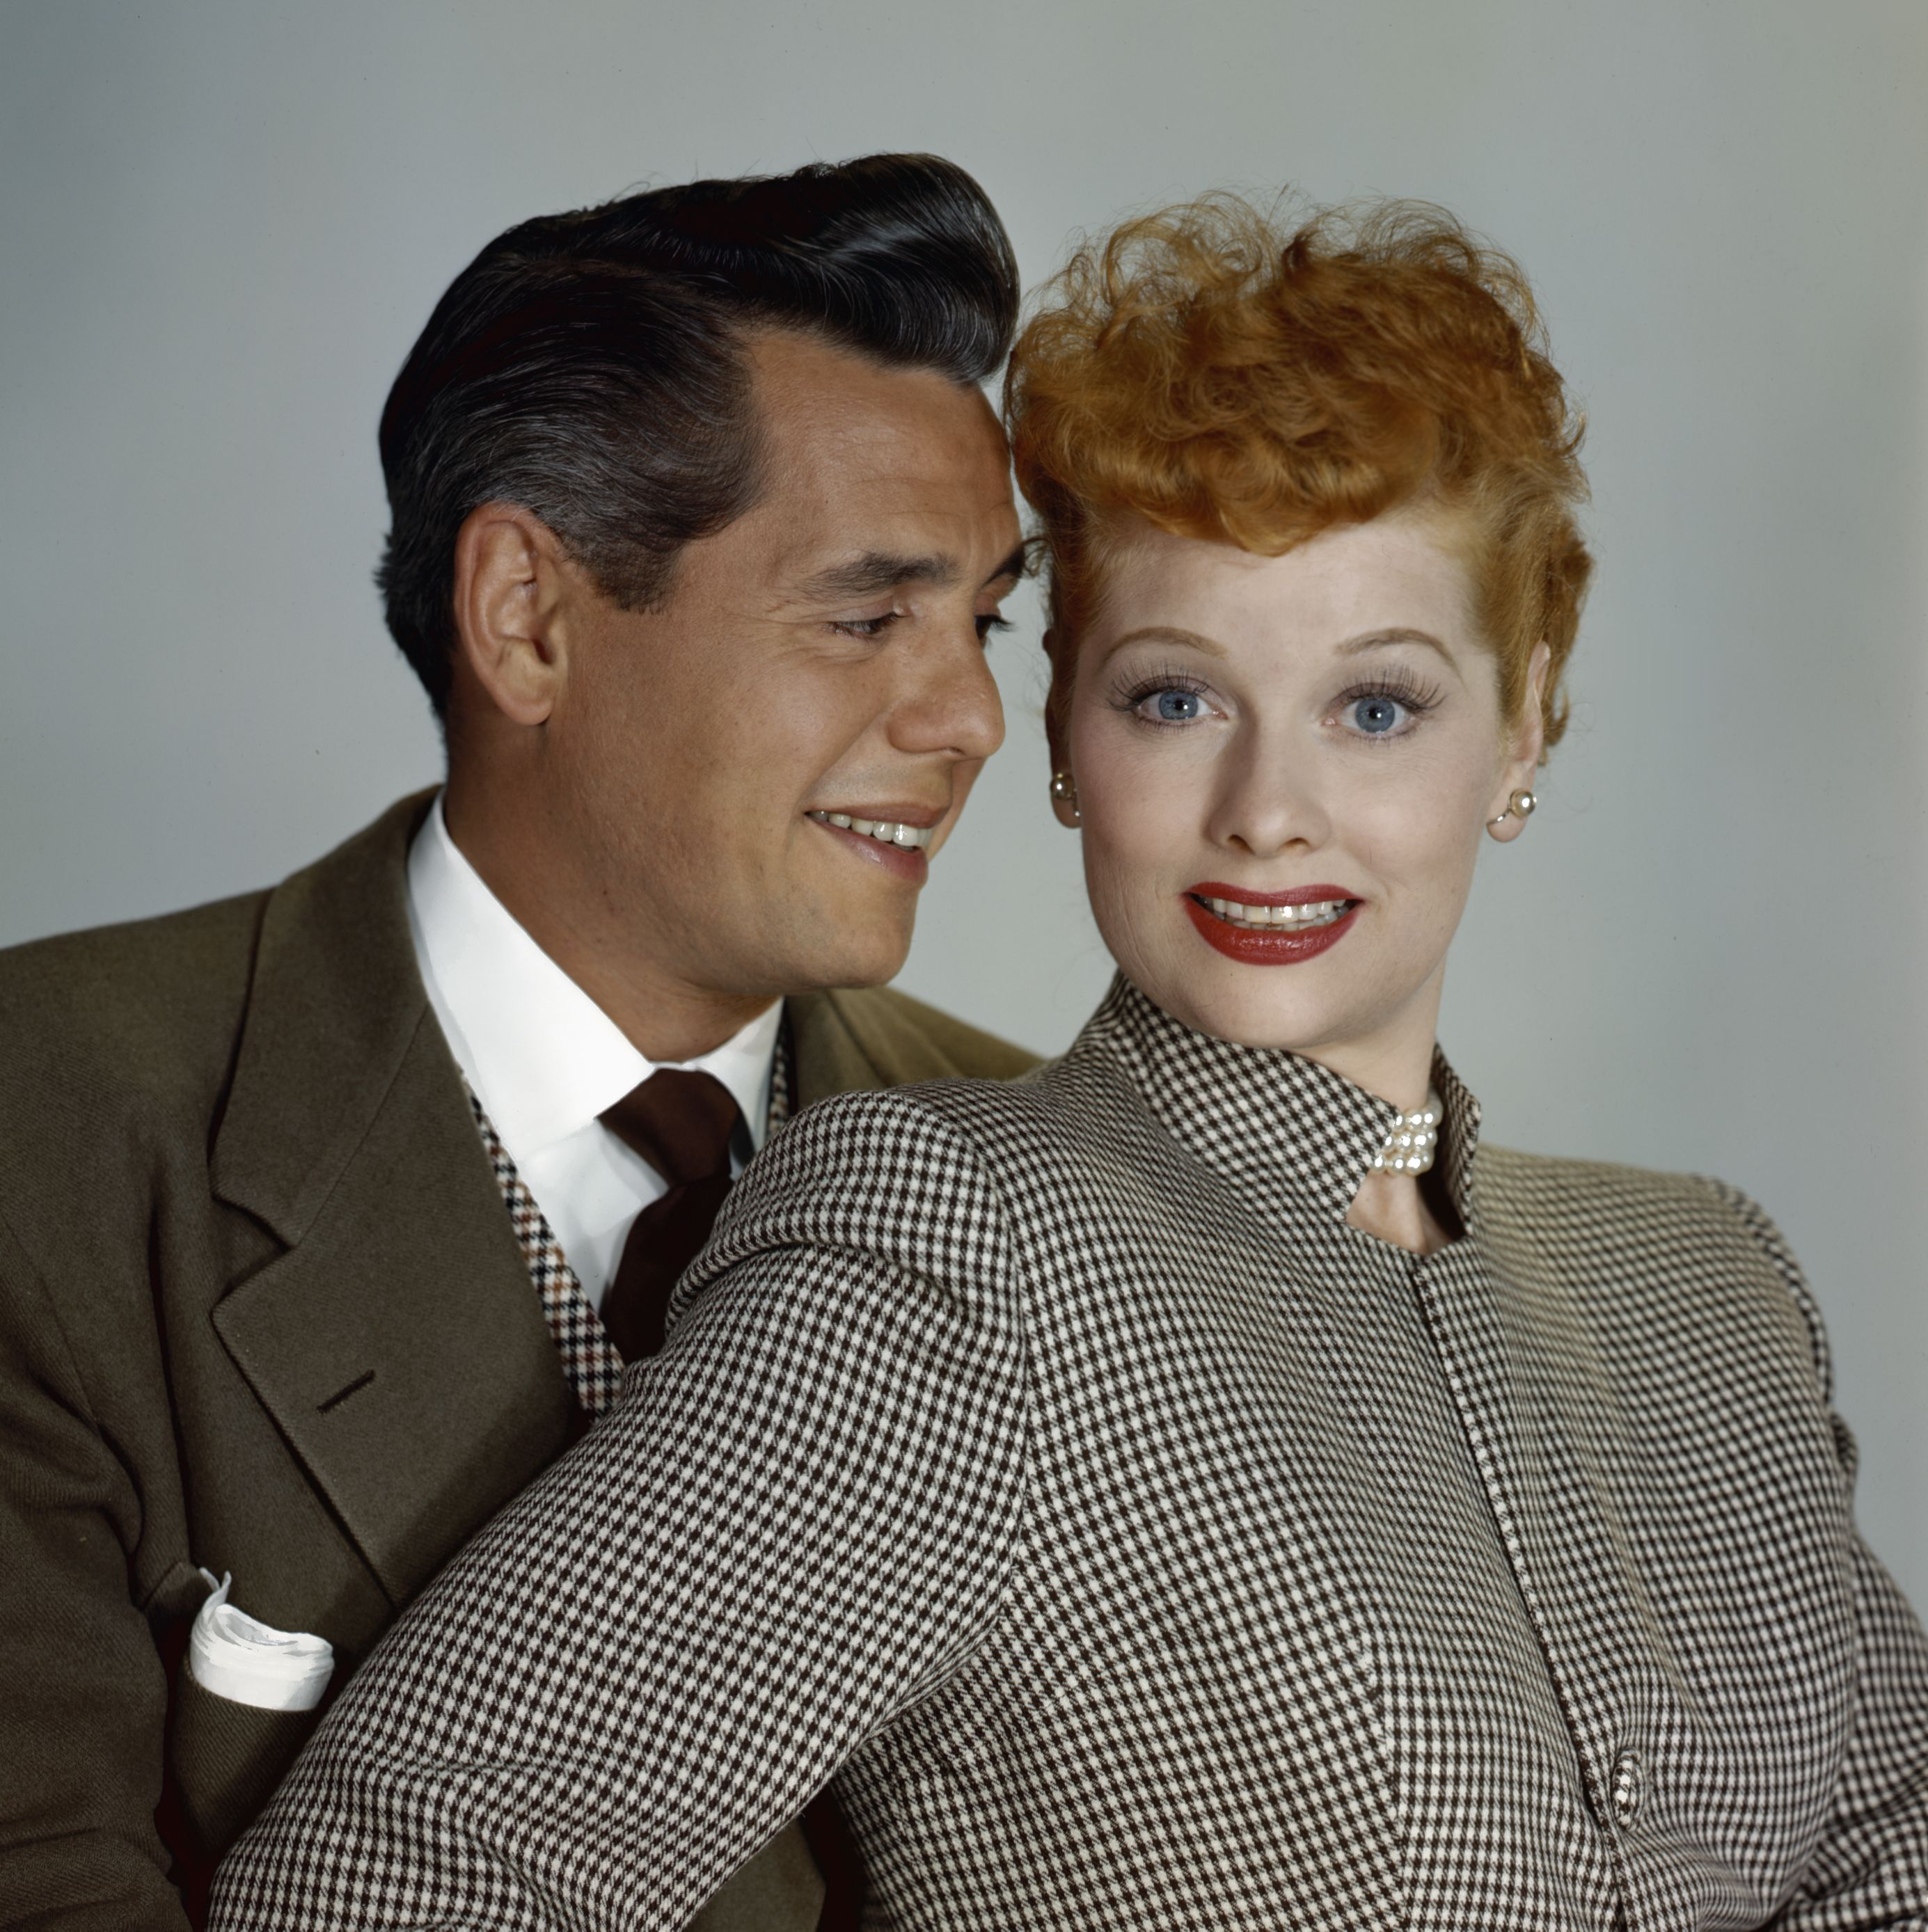 Desi Arnaz and Lucille Ball Desi and Lucy were a huge couple in the '40s and '50s—both onscreen and off, costarring in the hit TV show I Love Lucy . However, the couple was volatile offscreen and Lucy filed for divorce in 1944, but they reconciled.